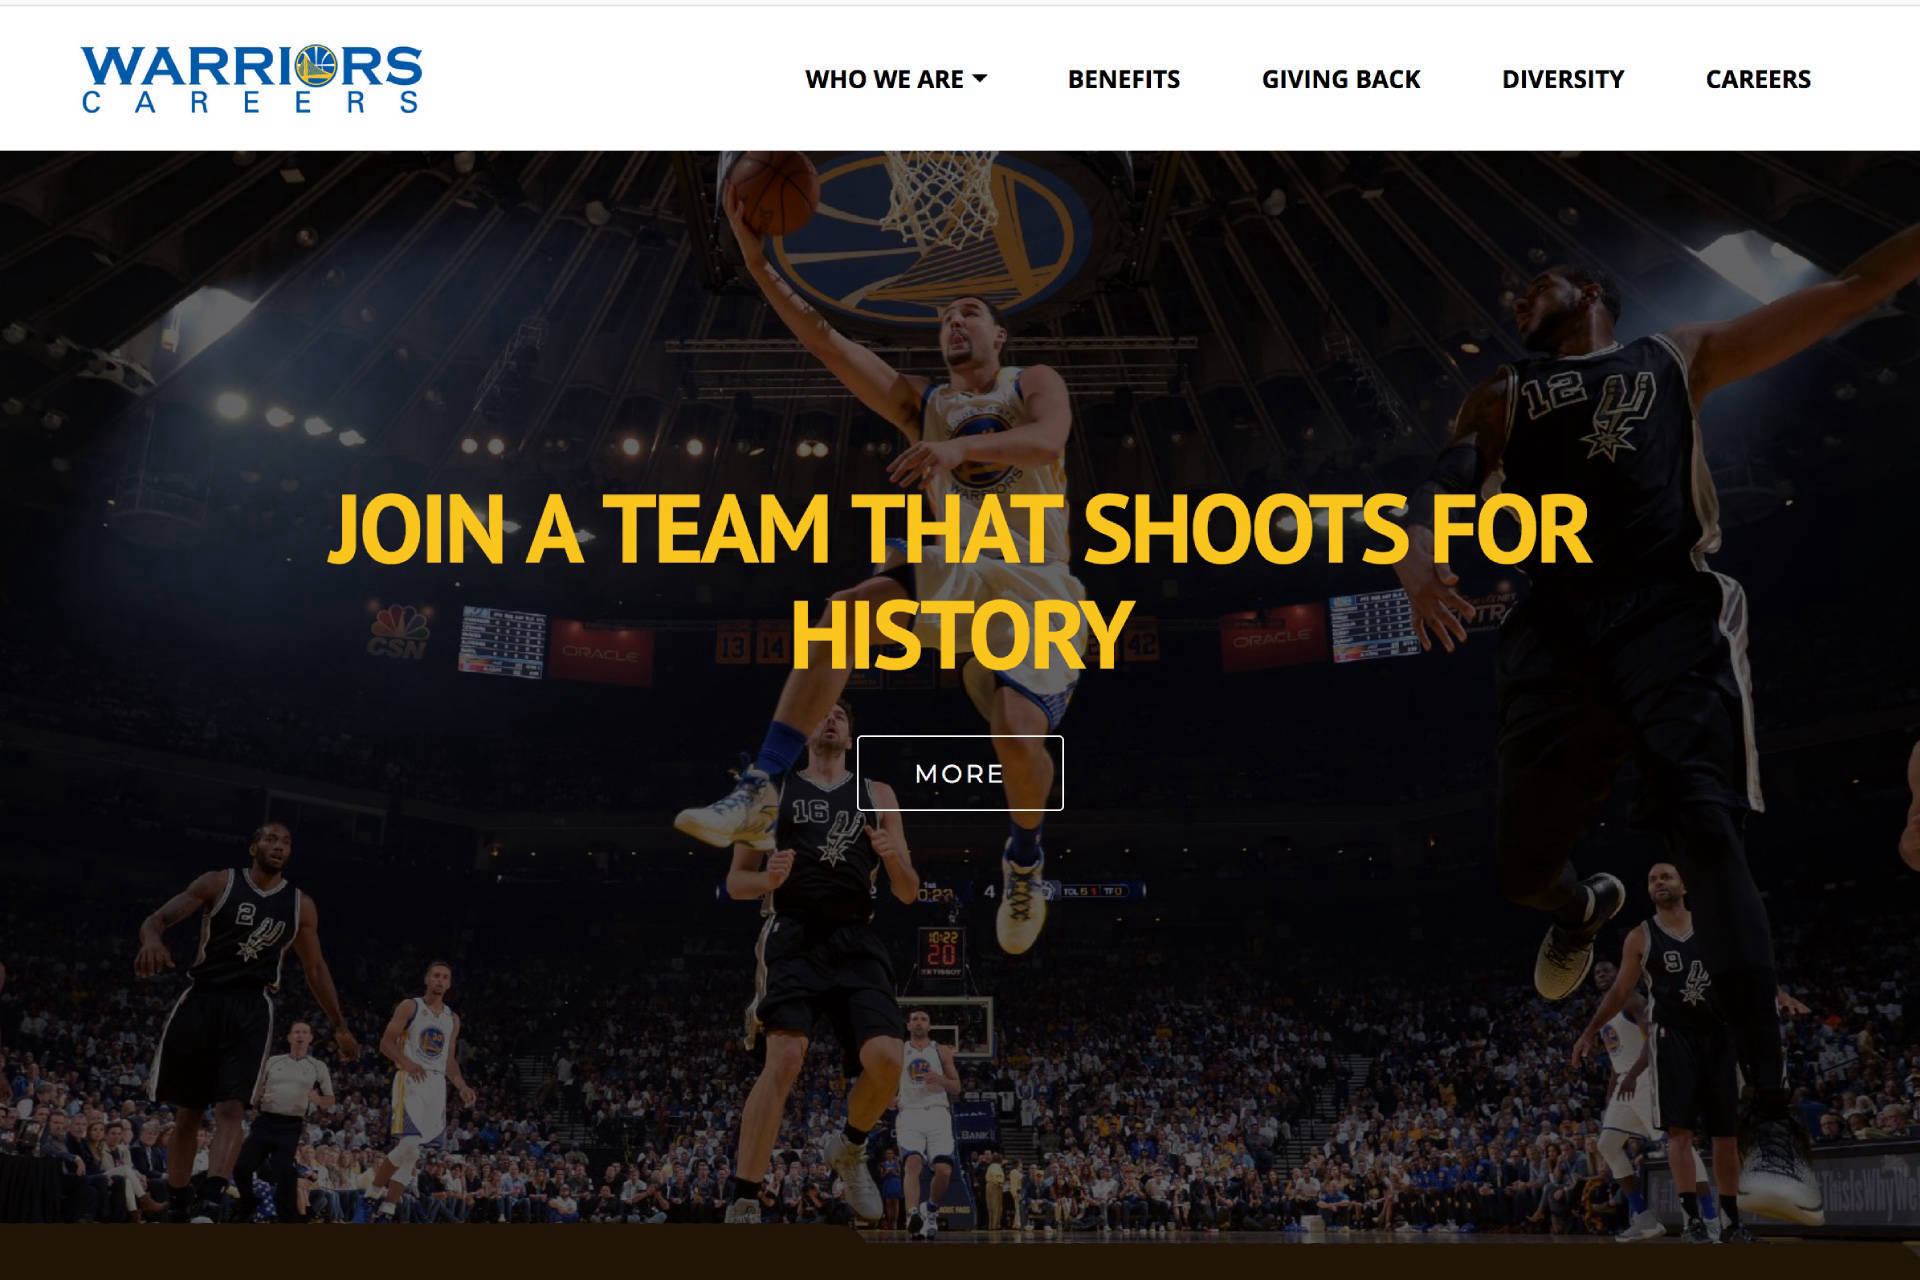 Golden State Warriors Careers Website